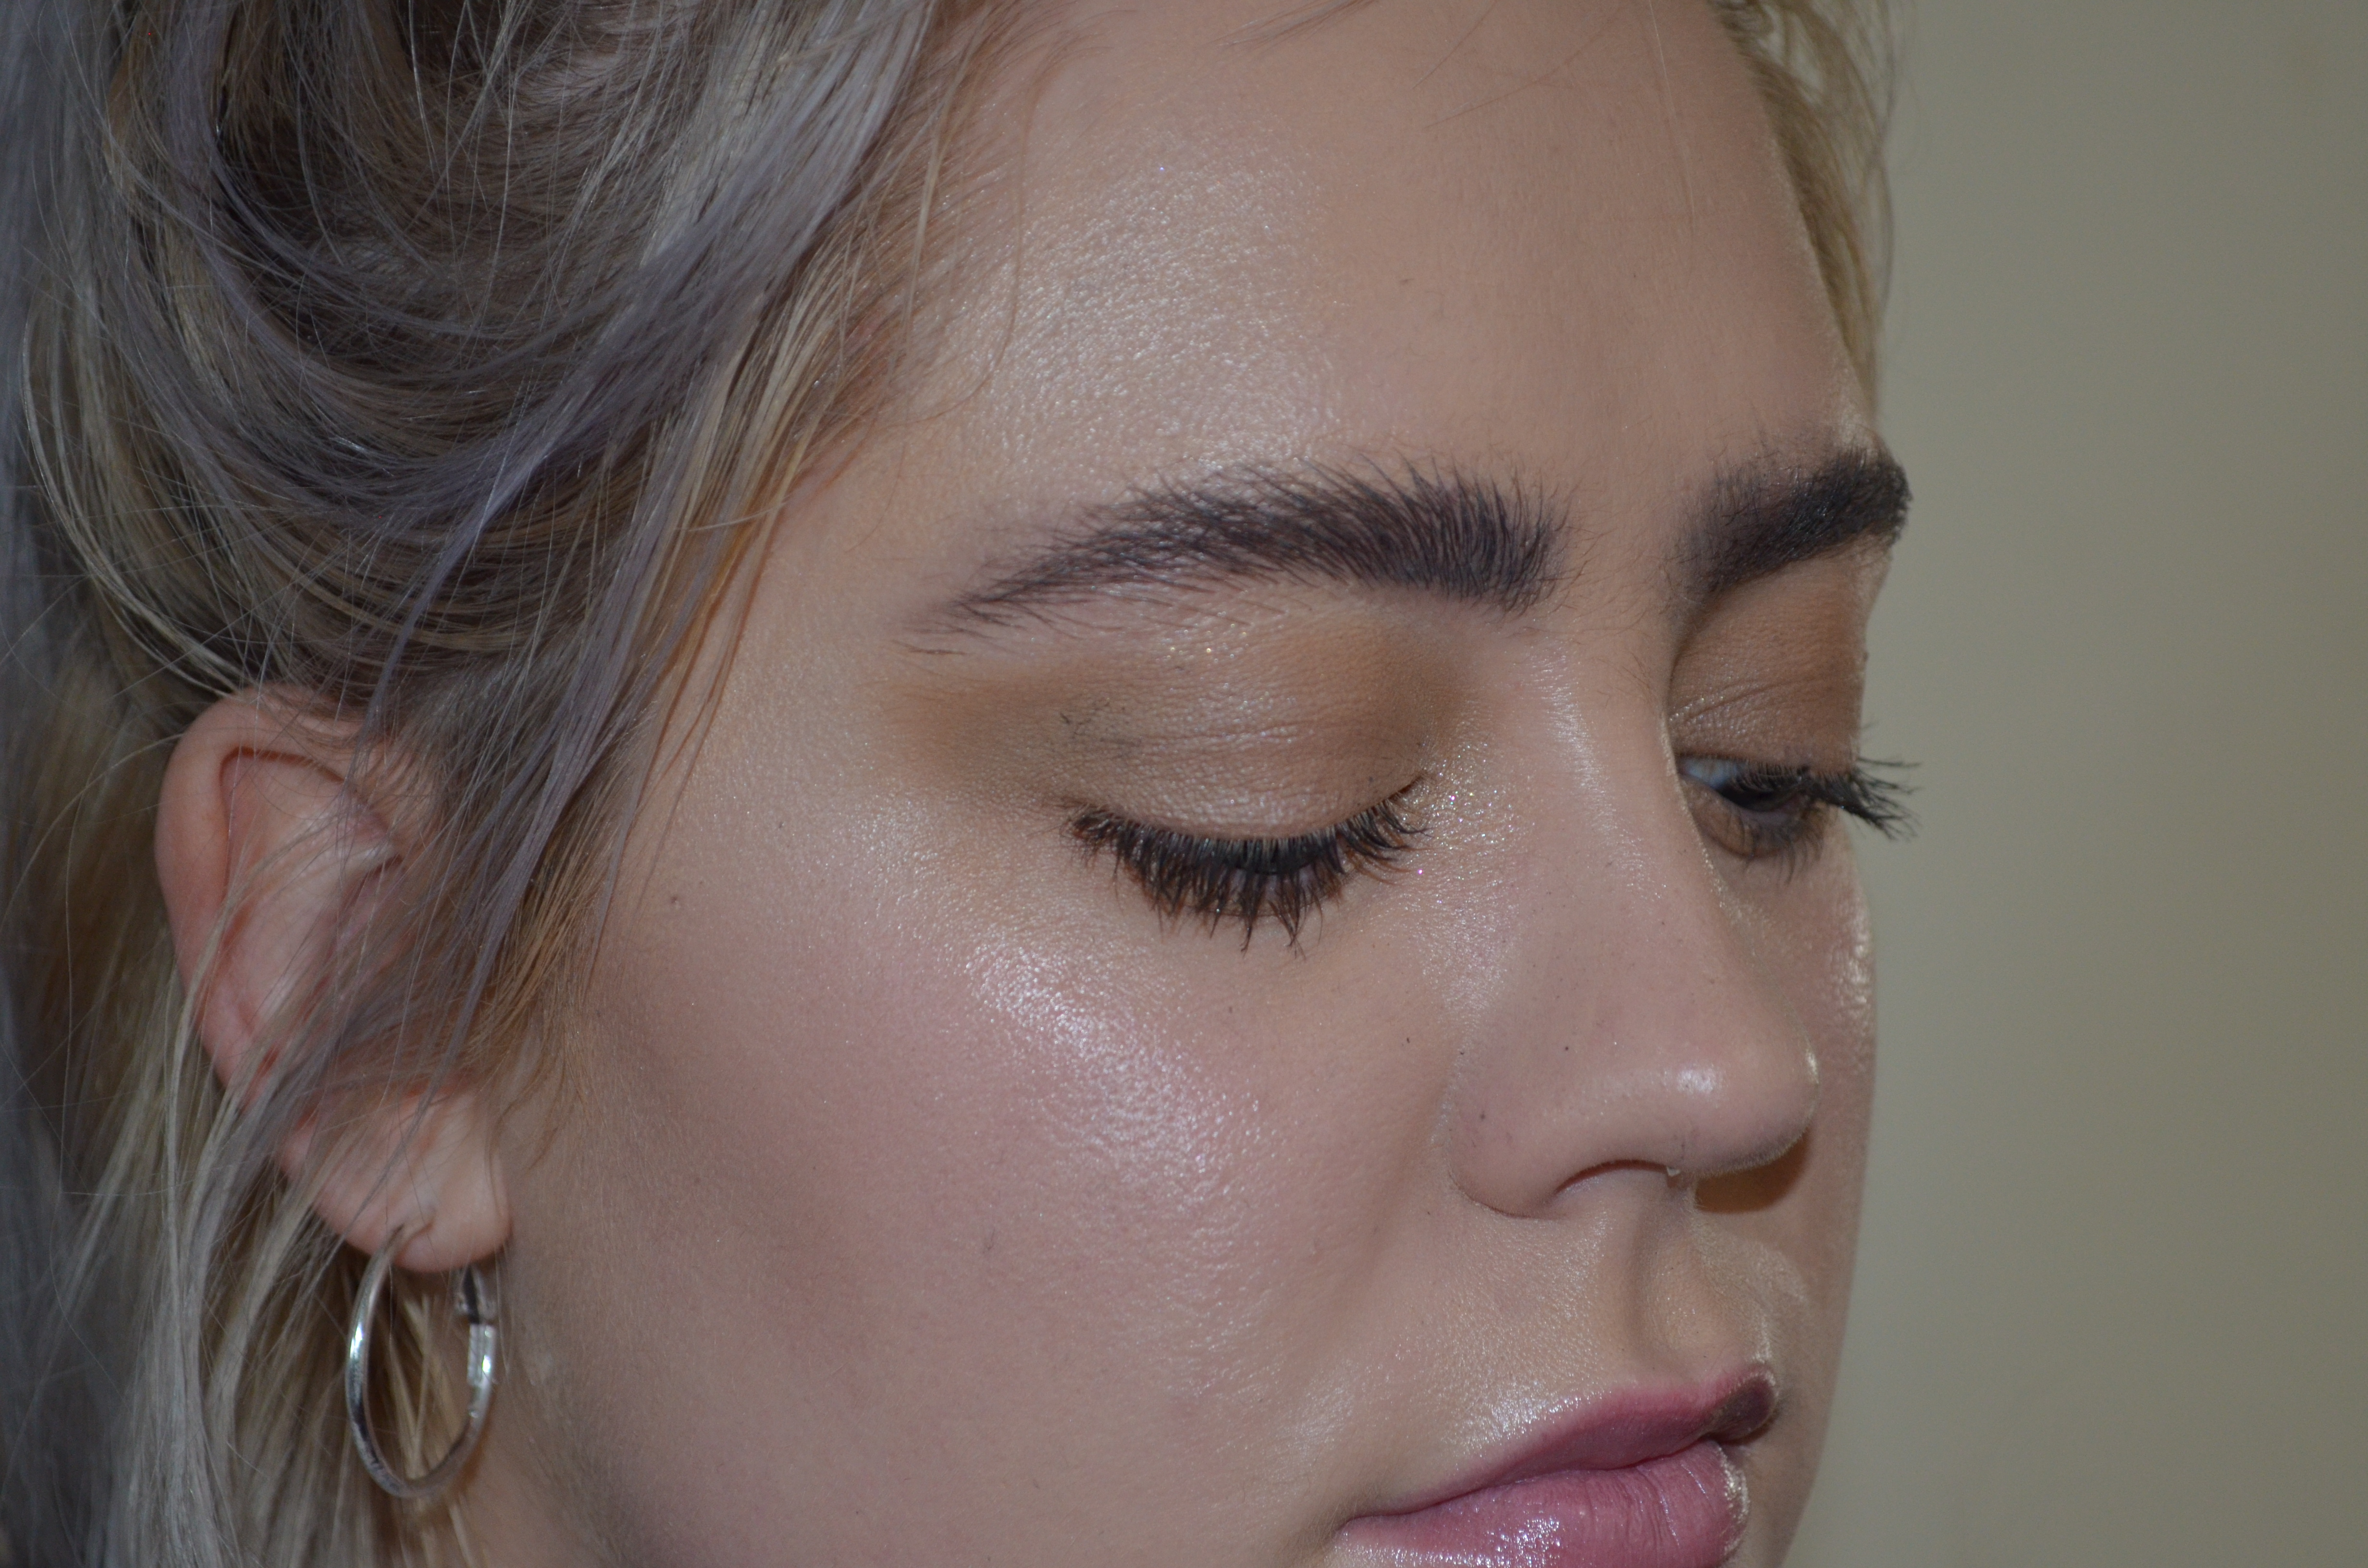 This Bushy Winter Brow Tutorial Is A Refreshing Change From Those